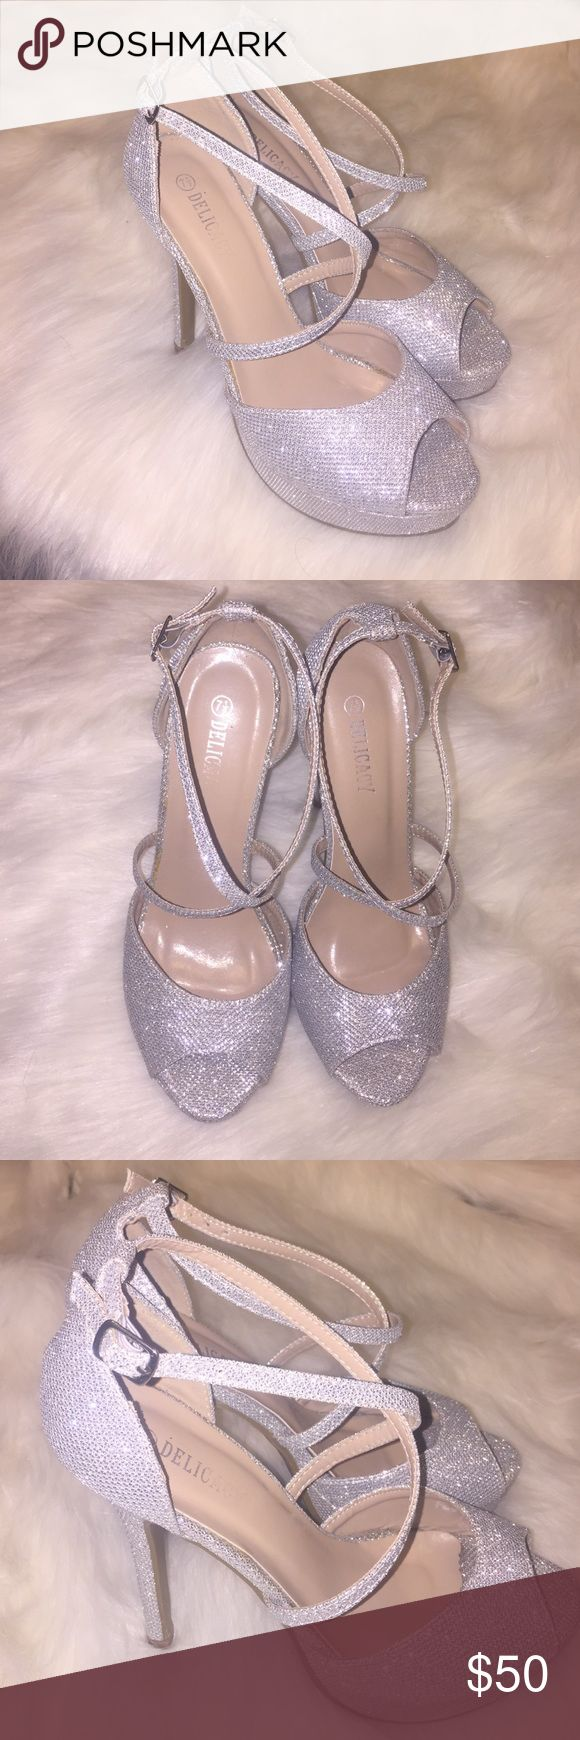 brand new sparkly stiletto pumps silver/glitter stilettok pumps, great for prom! Shoes Heels